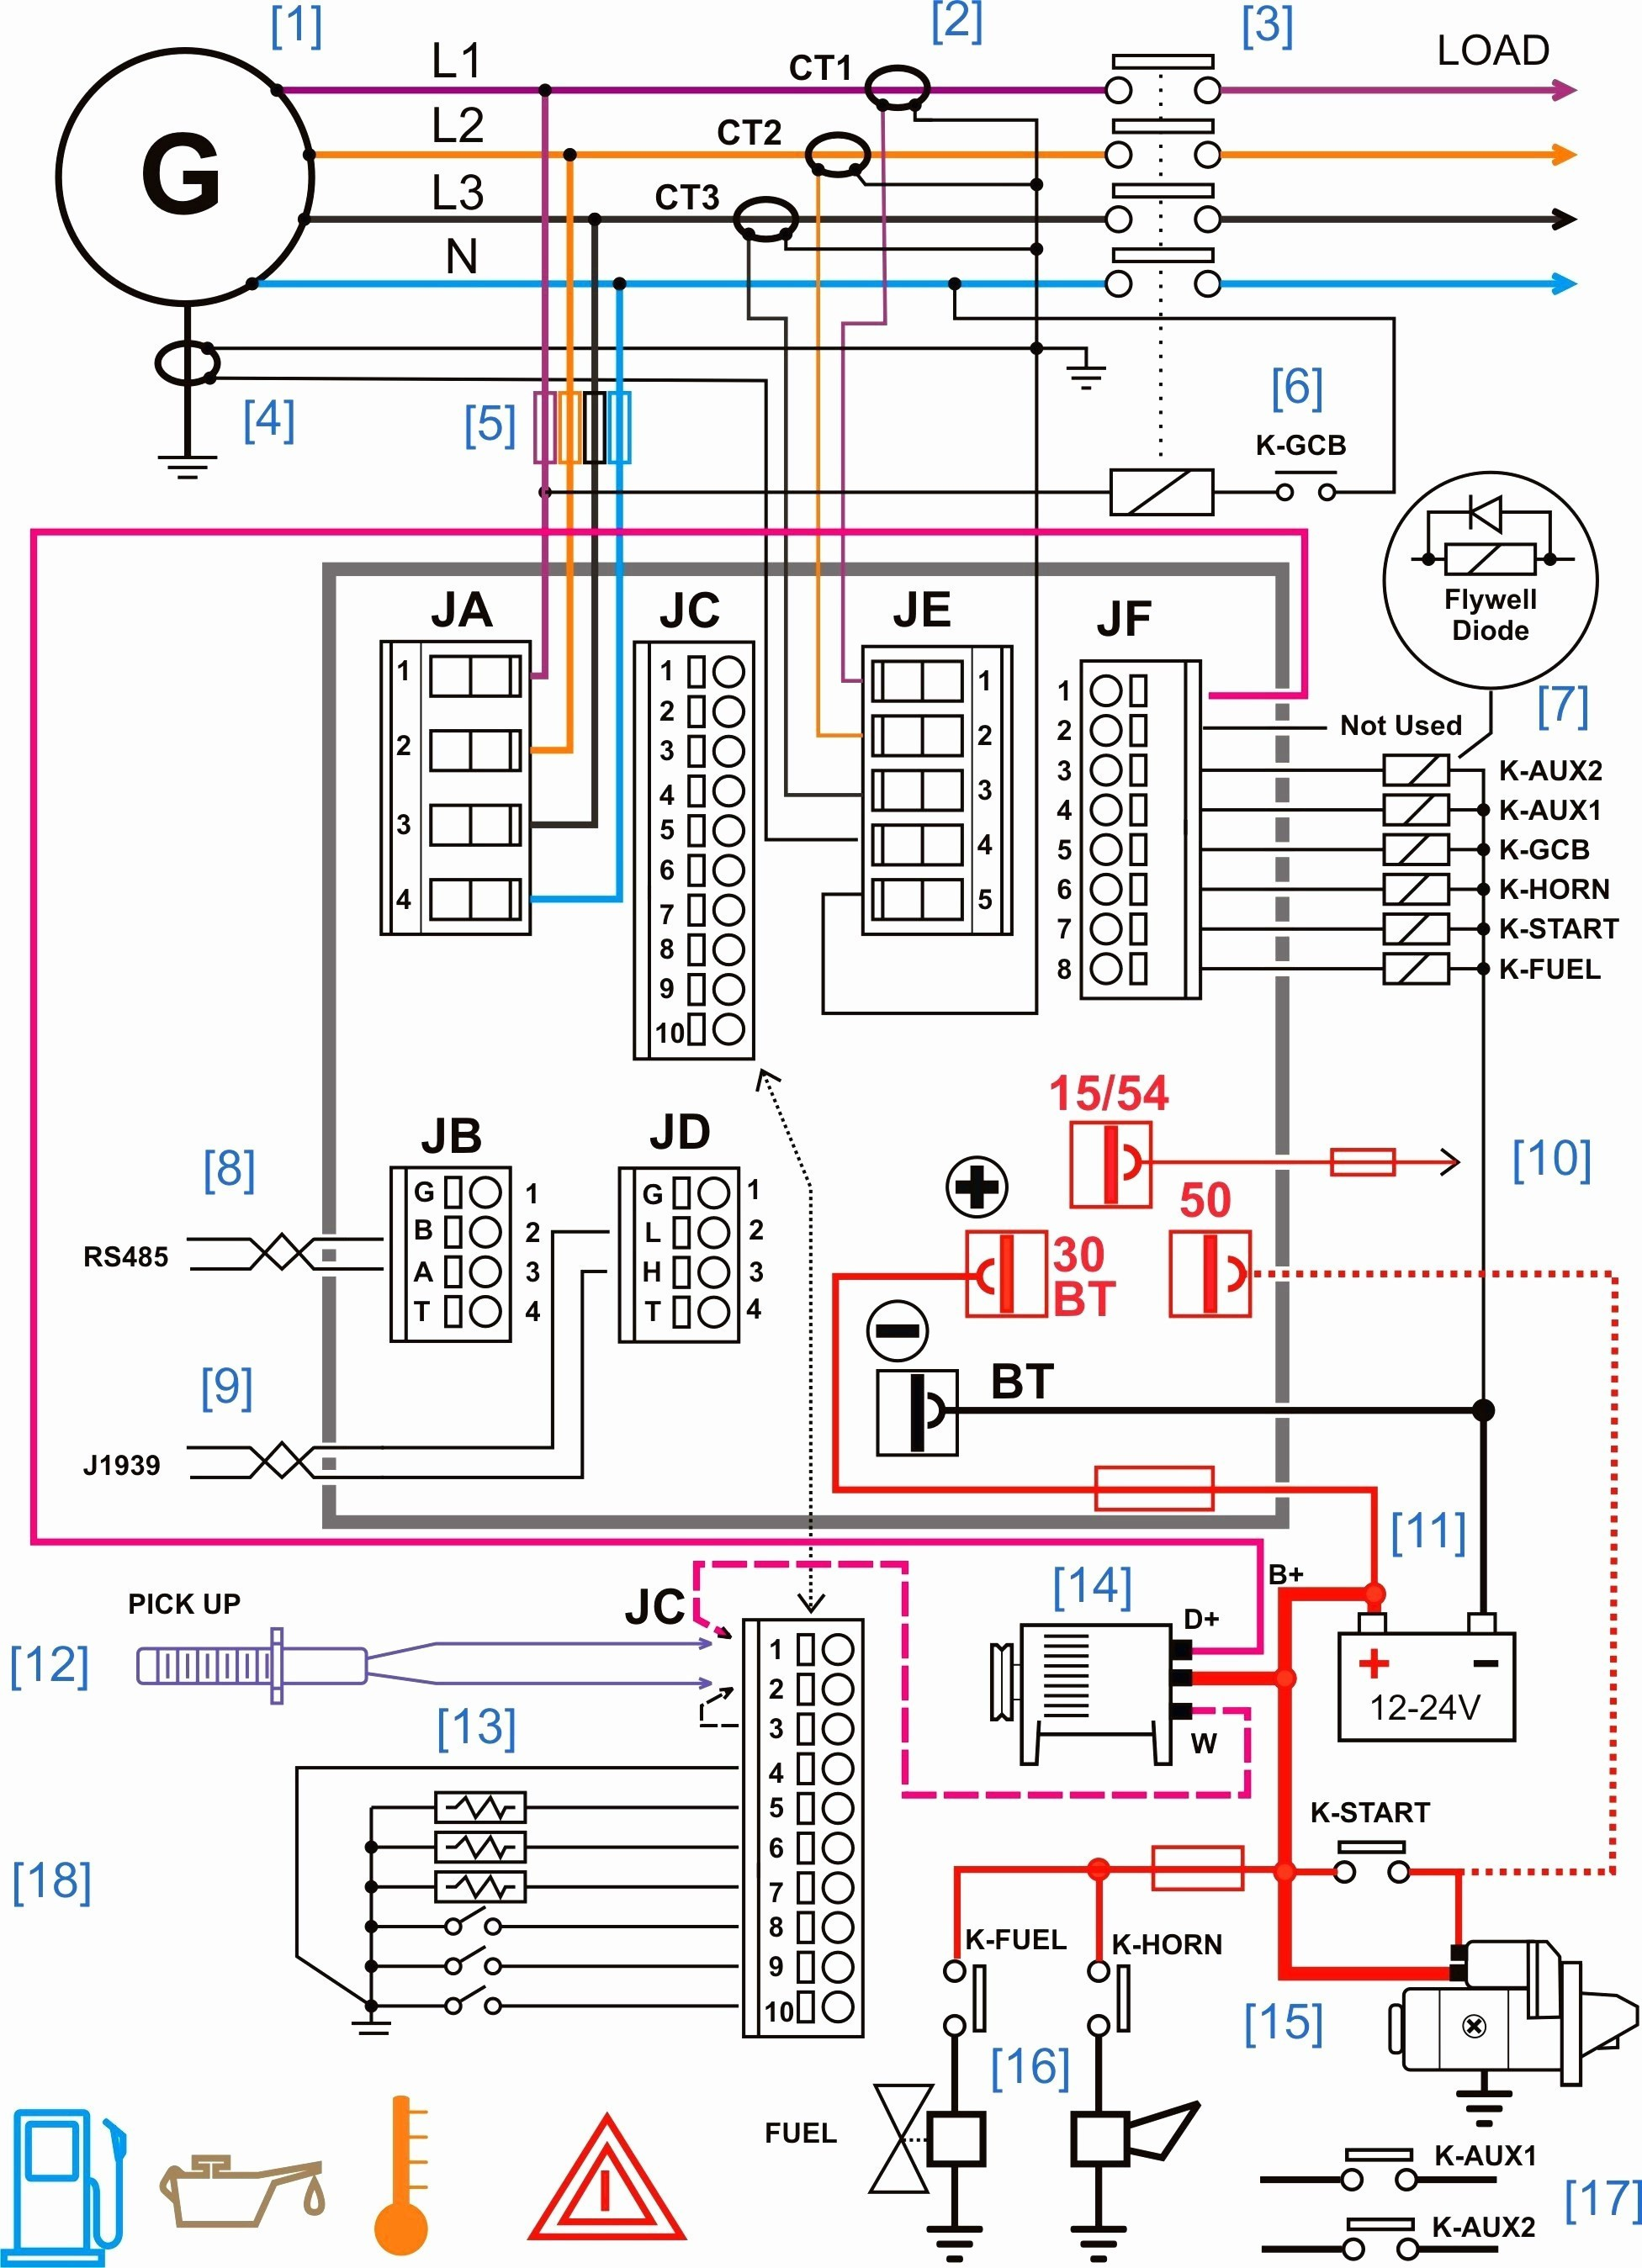 Free Wiring Diagrams for Cars Free Wiring Diagram Automotive Best Automotive Wiring Diagram Line Of Free Wiring Diagrams for Cars